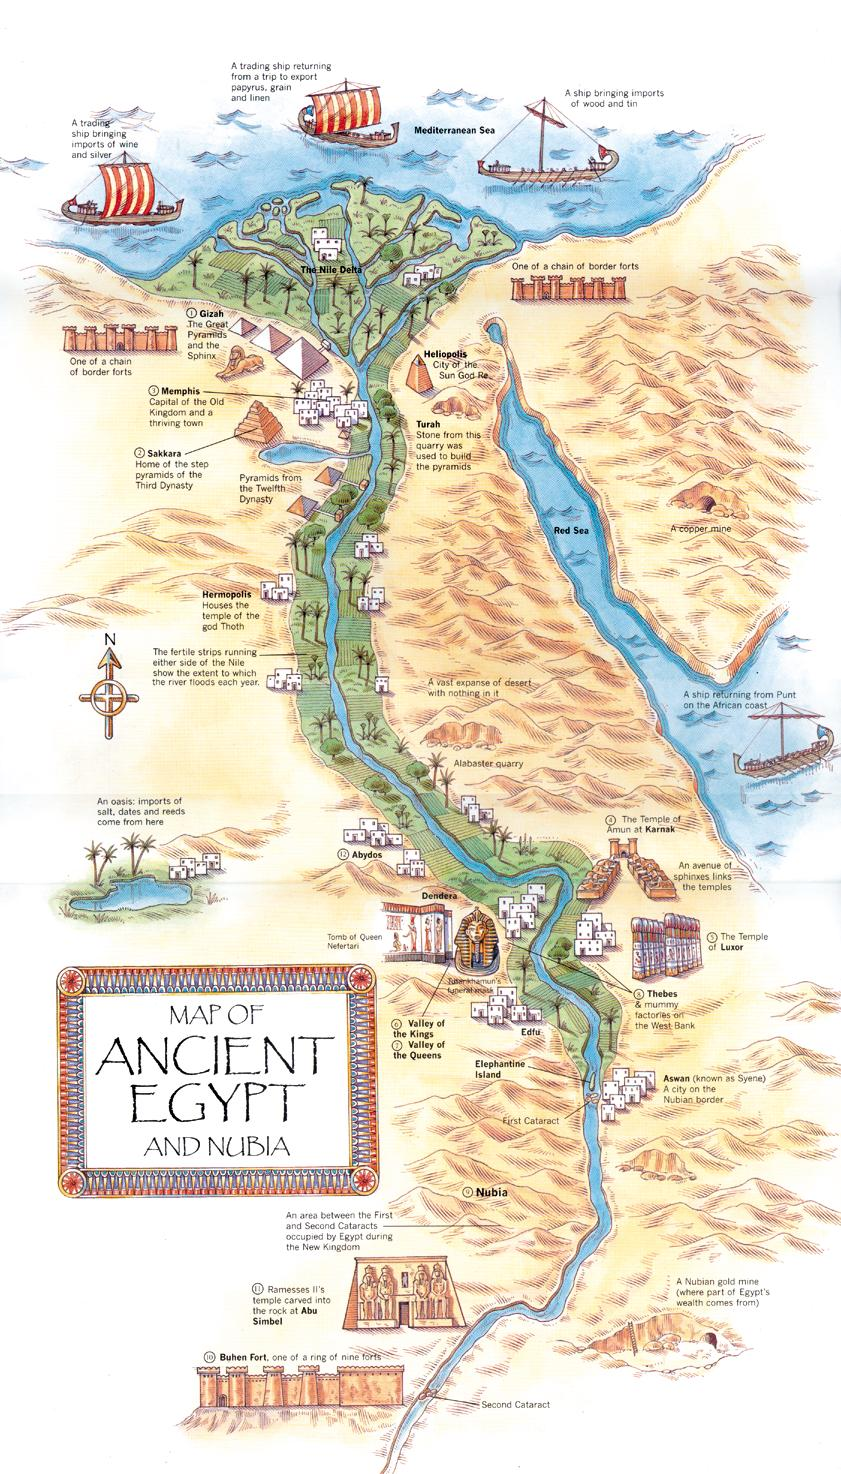 Map of ancient egypt michael bradley time traveler map of ancient egypt gumiabroncs Images